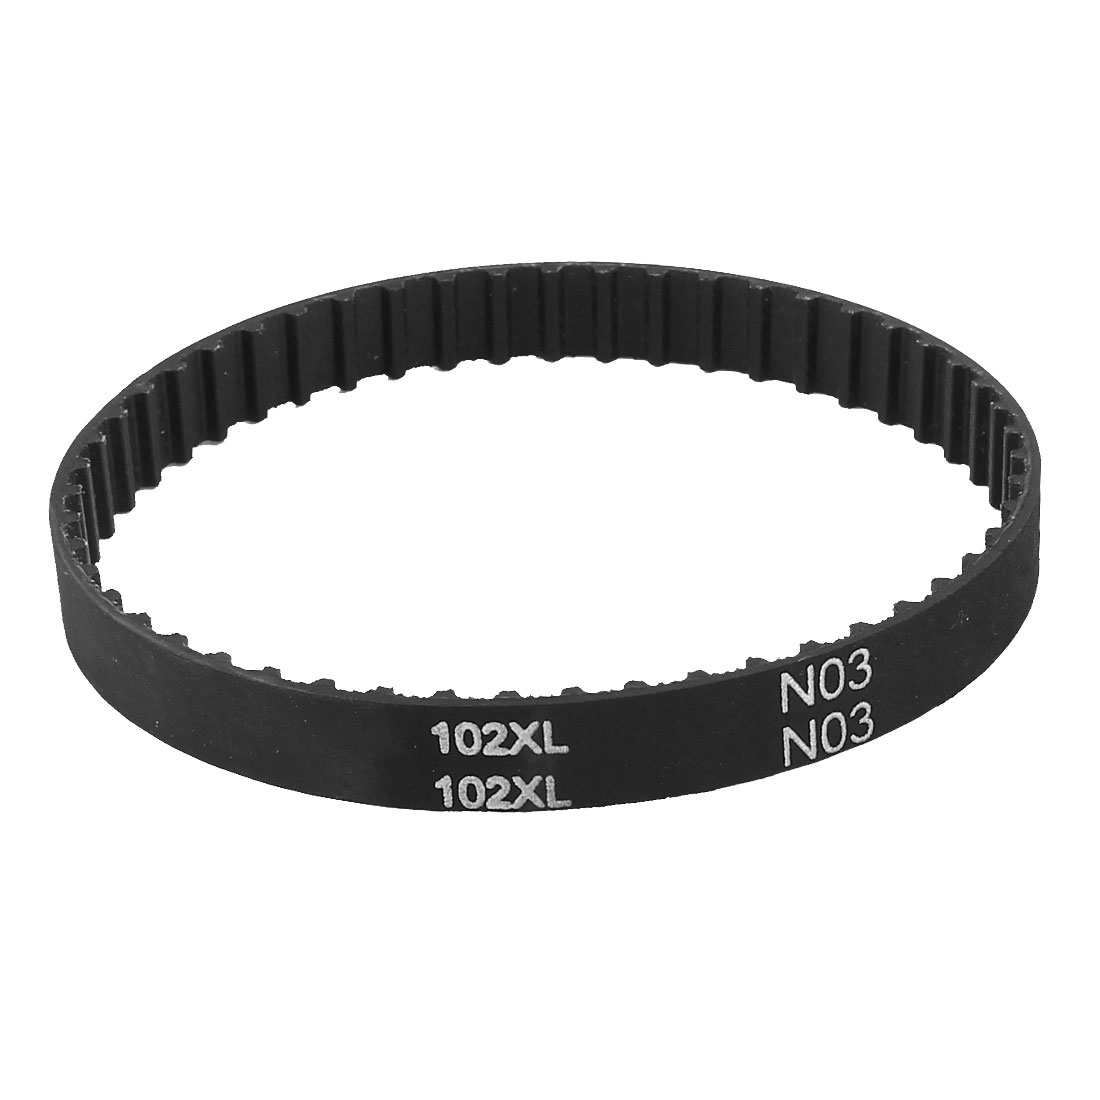 "102XL 037 51 Teeth 5.08mm Pitch 9.5mm Wide 259.08mm 10.2"" Timing Belt Black"